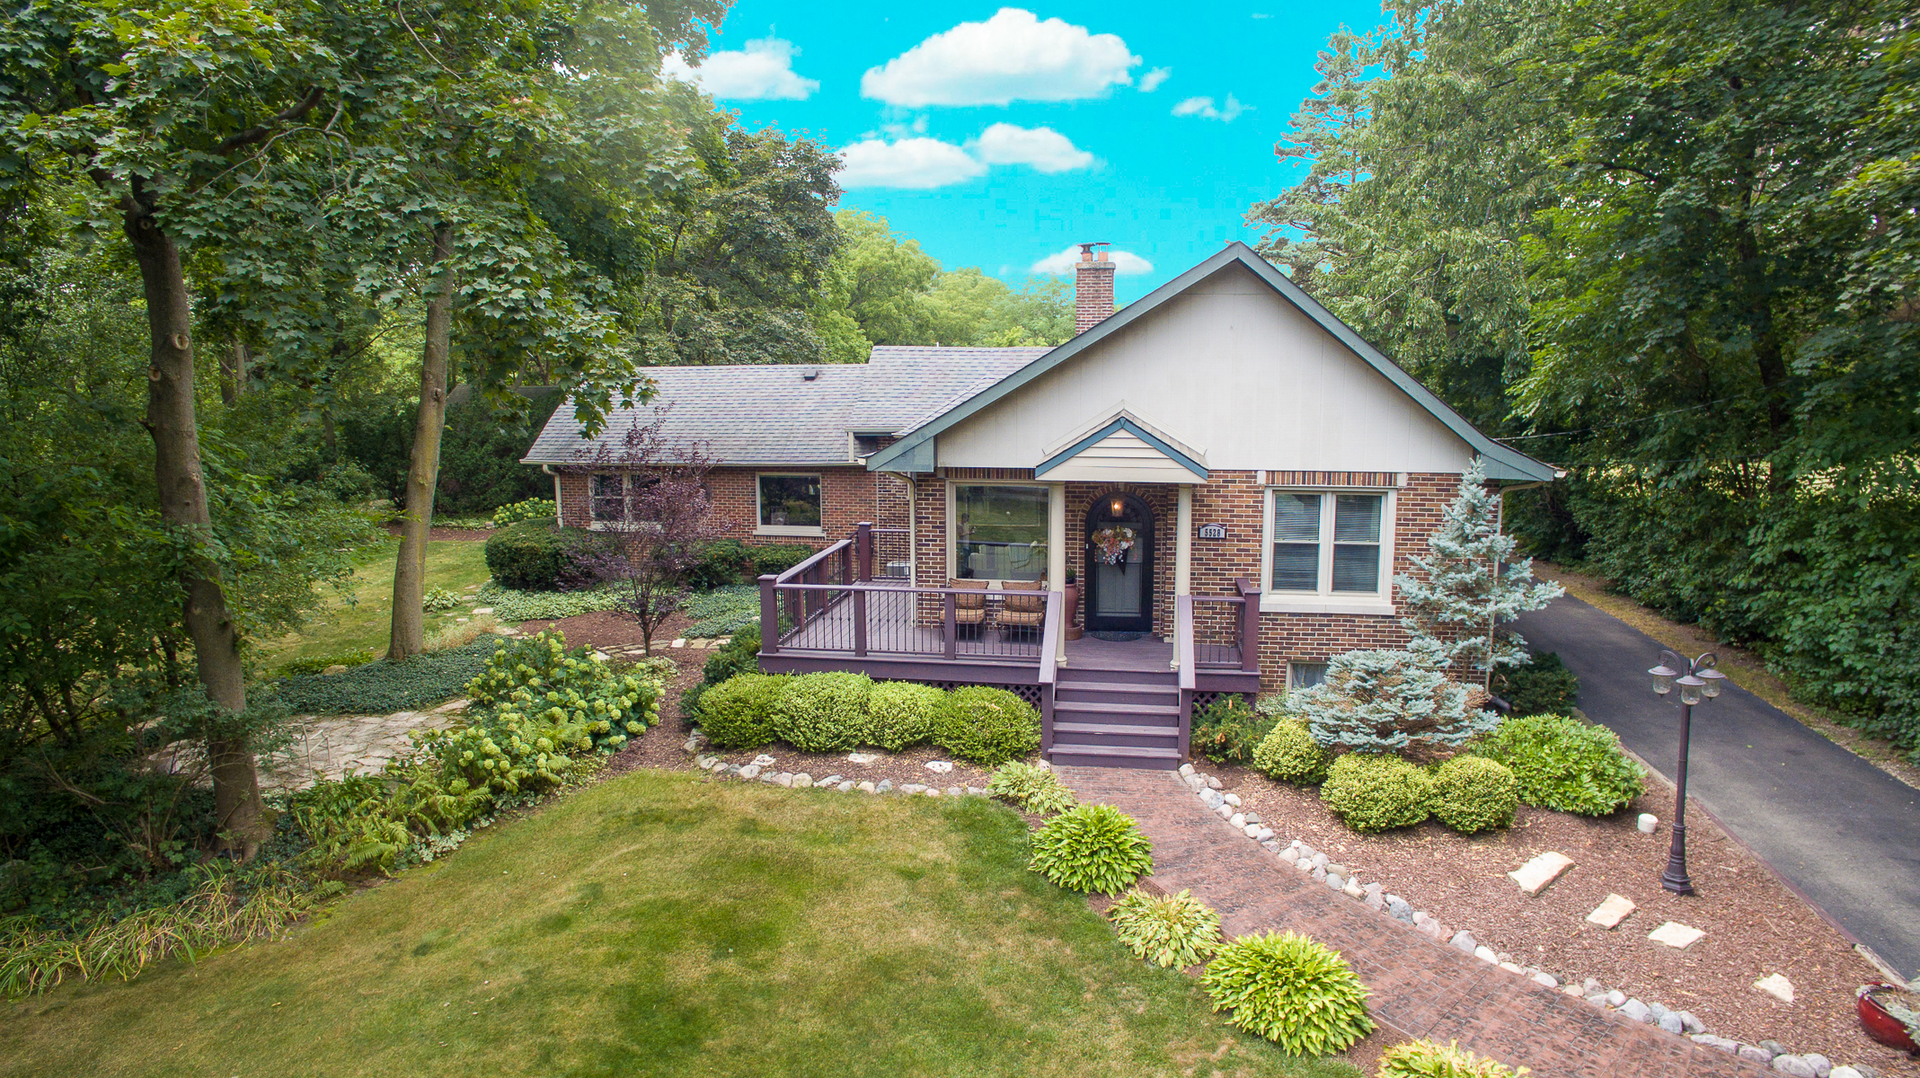 Photo for 5528 Fairview Avenue, DOWNERS GROVE, IL 60516 (MLS # 10344833)